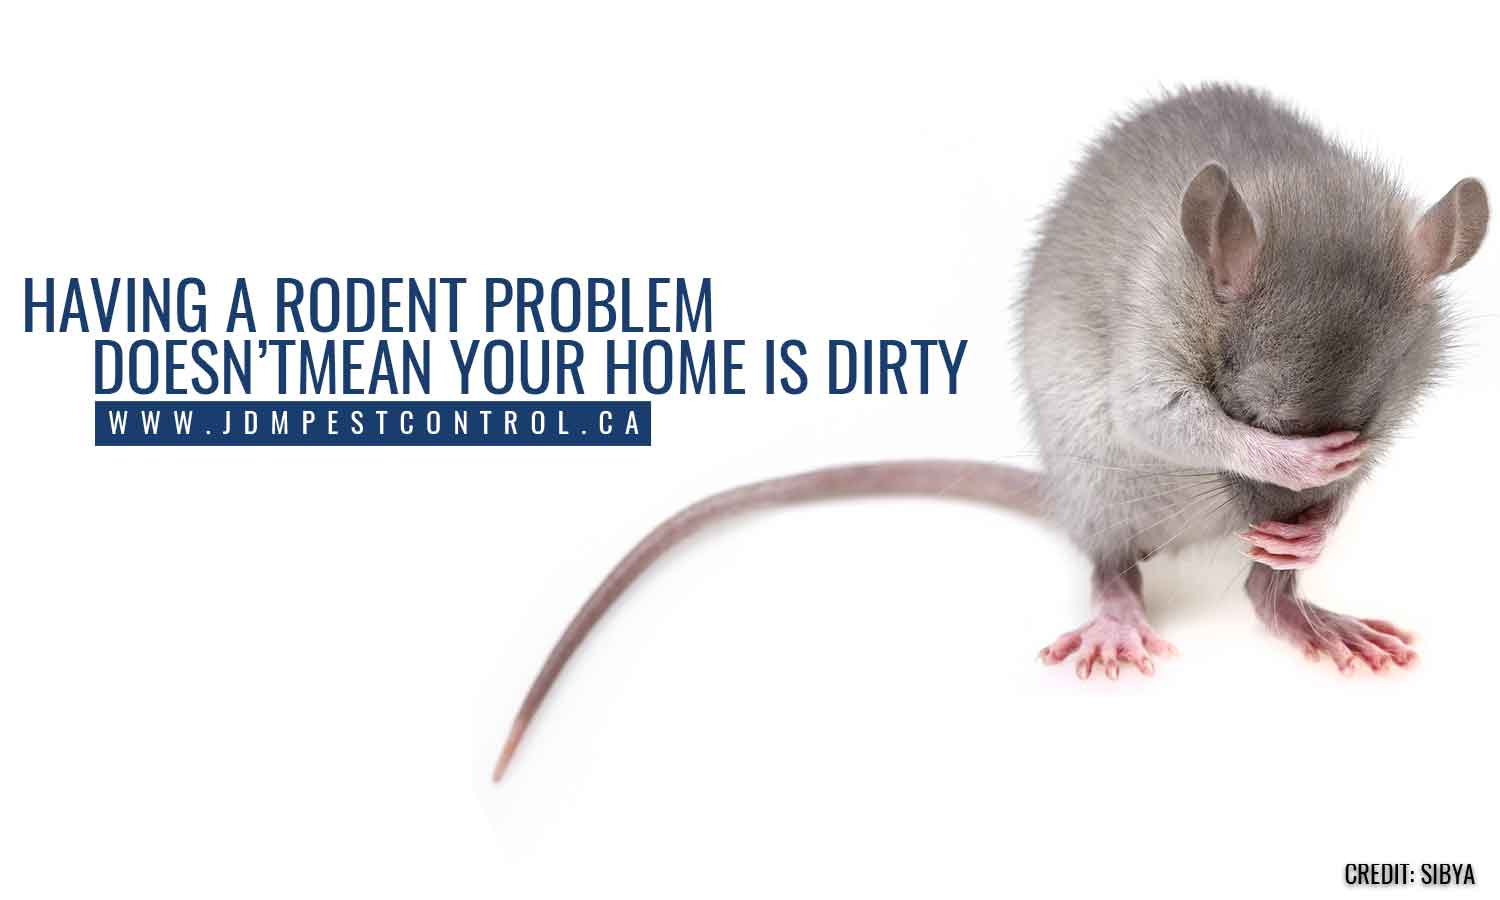 Having a rodent problem doesn't mean your home is dirty